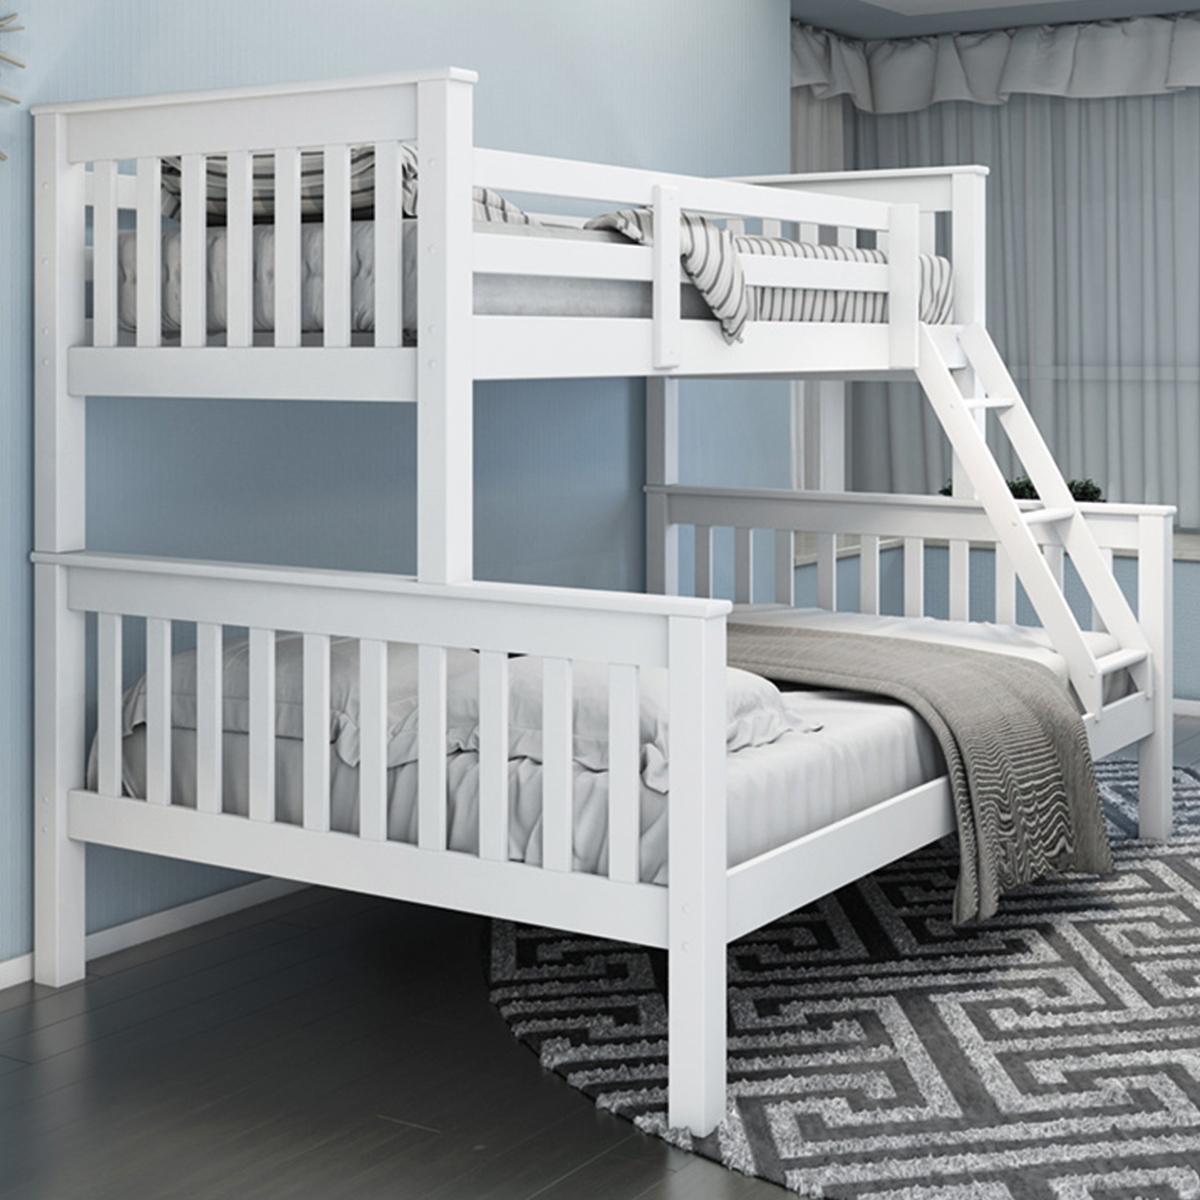 novaro triple sleeper bunk bed frame online bed mattress store shops in south london. Black Bedroom Furniture Sets. Home Design Ideas